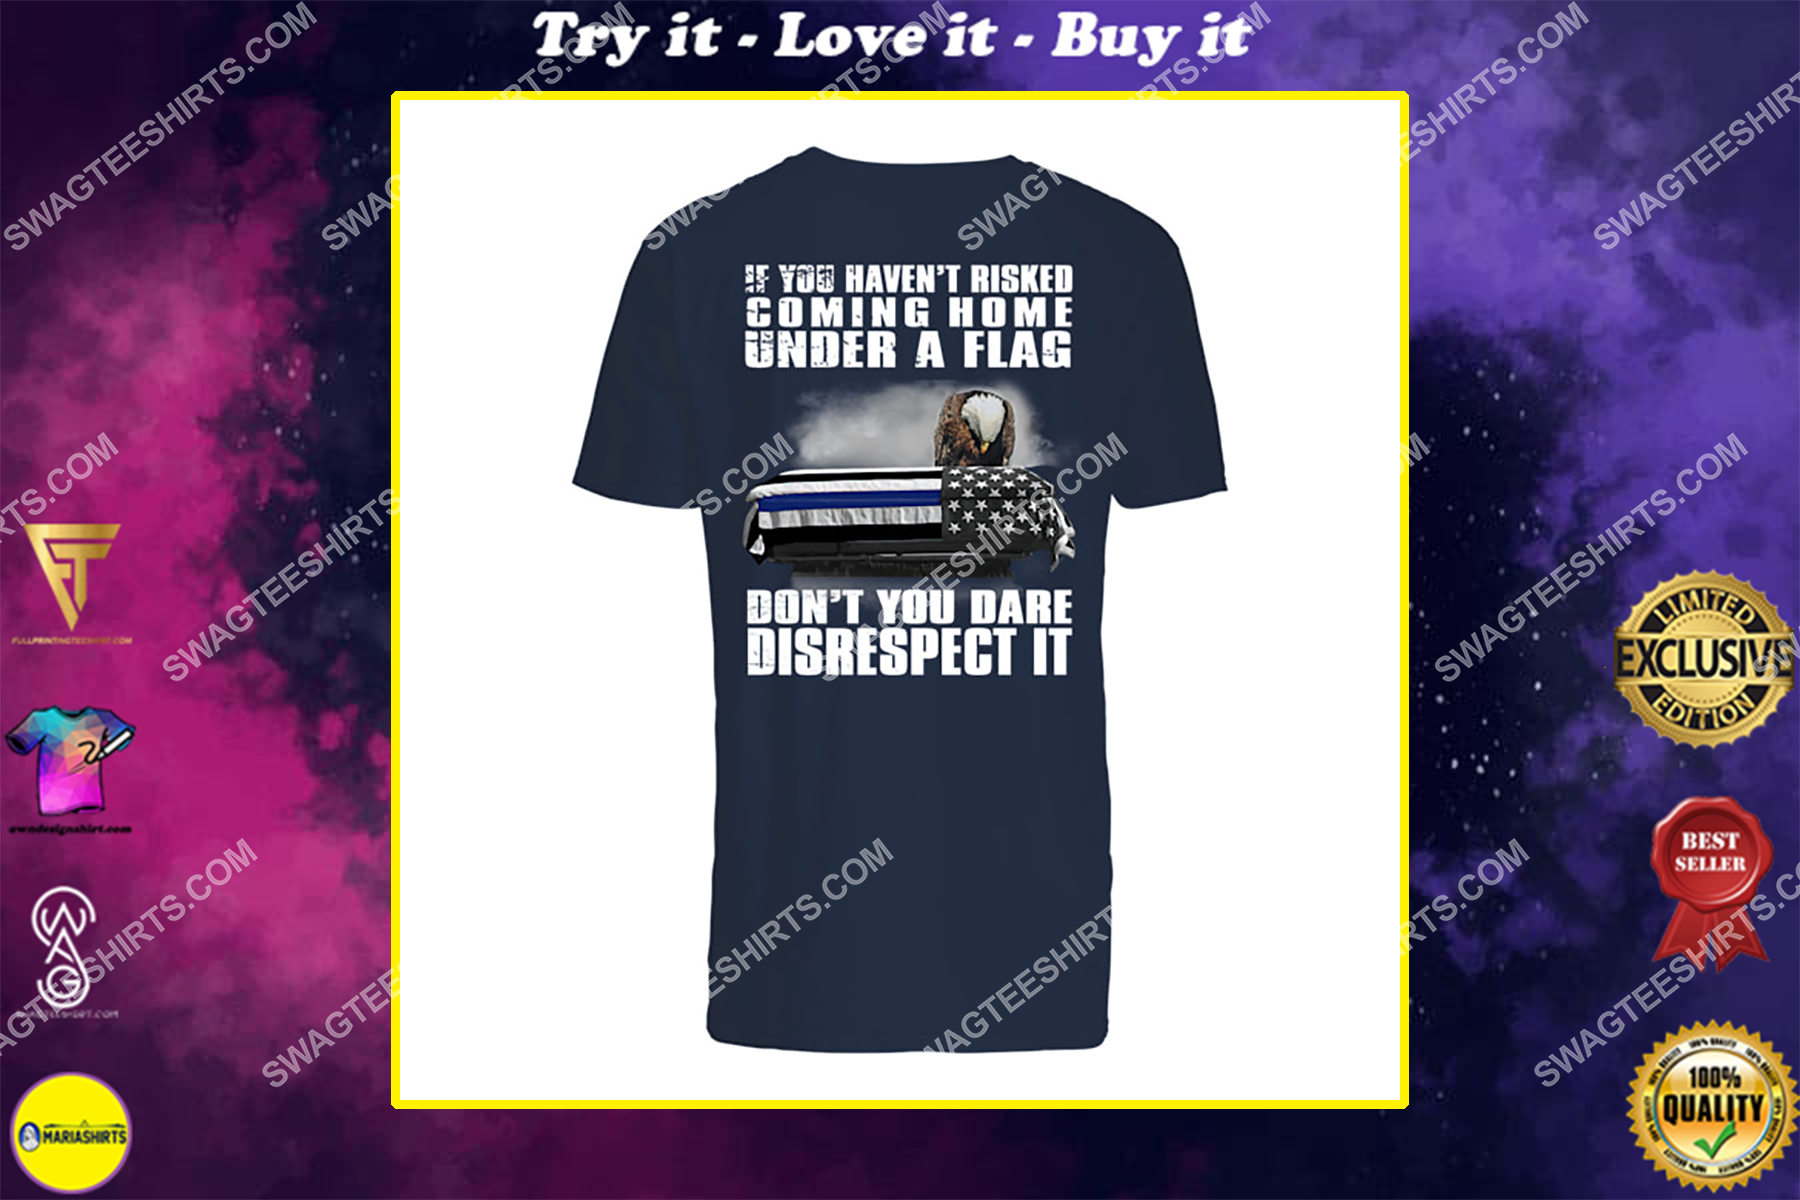 memorial day if you haven't risked coming home under a flag don't you dare disrespect it shirt